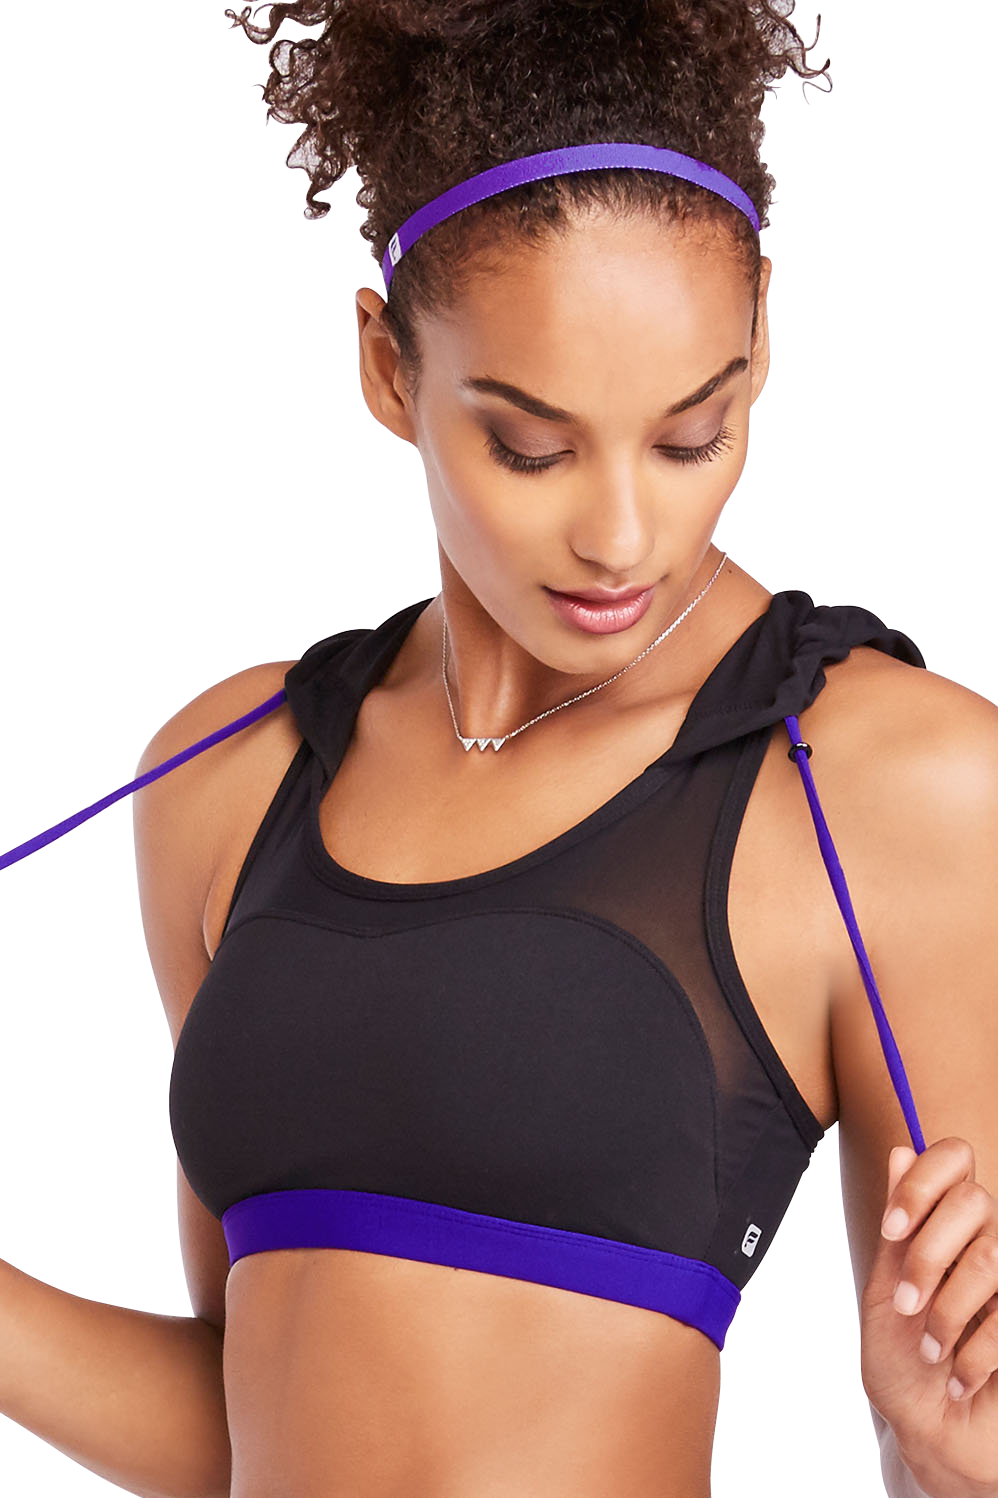 7ee76e5ad4927 This sports bra features all the technology you ve come to love. Enjoy  sweat-fighting fabric